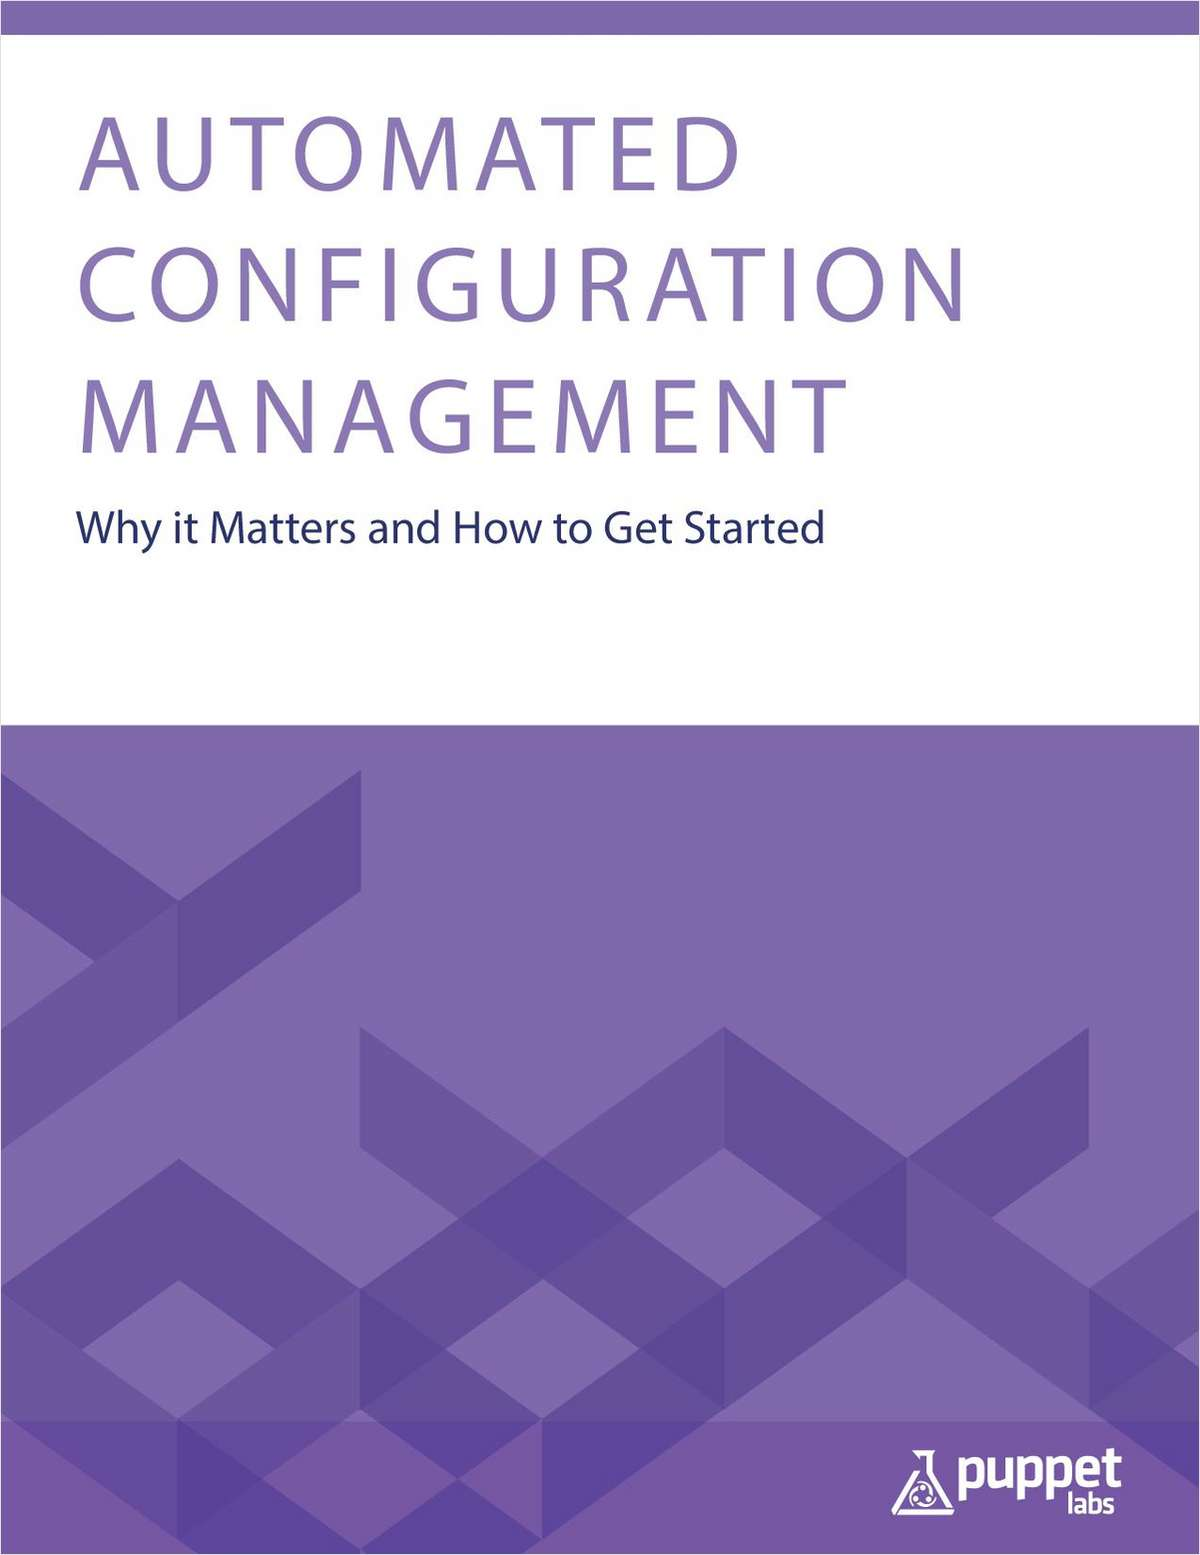 Automated Configuration Management: Why it Matters and How to Get Started